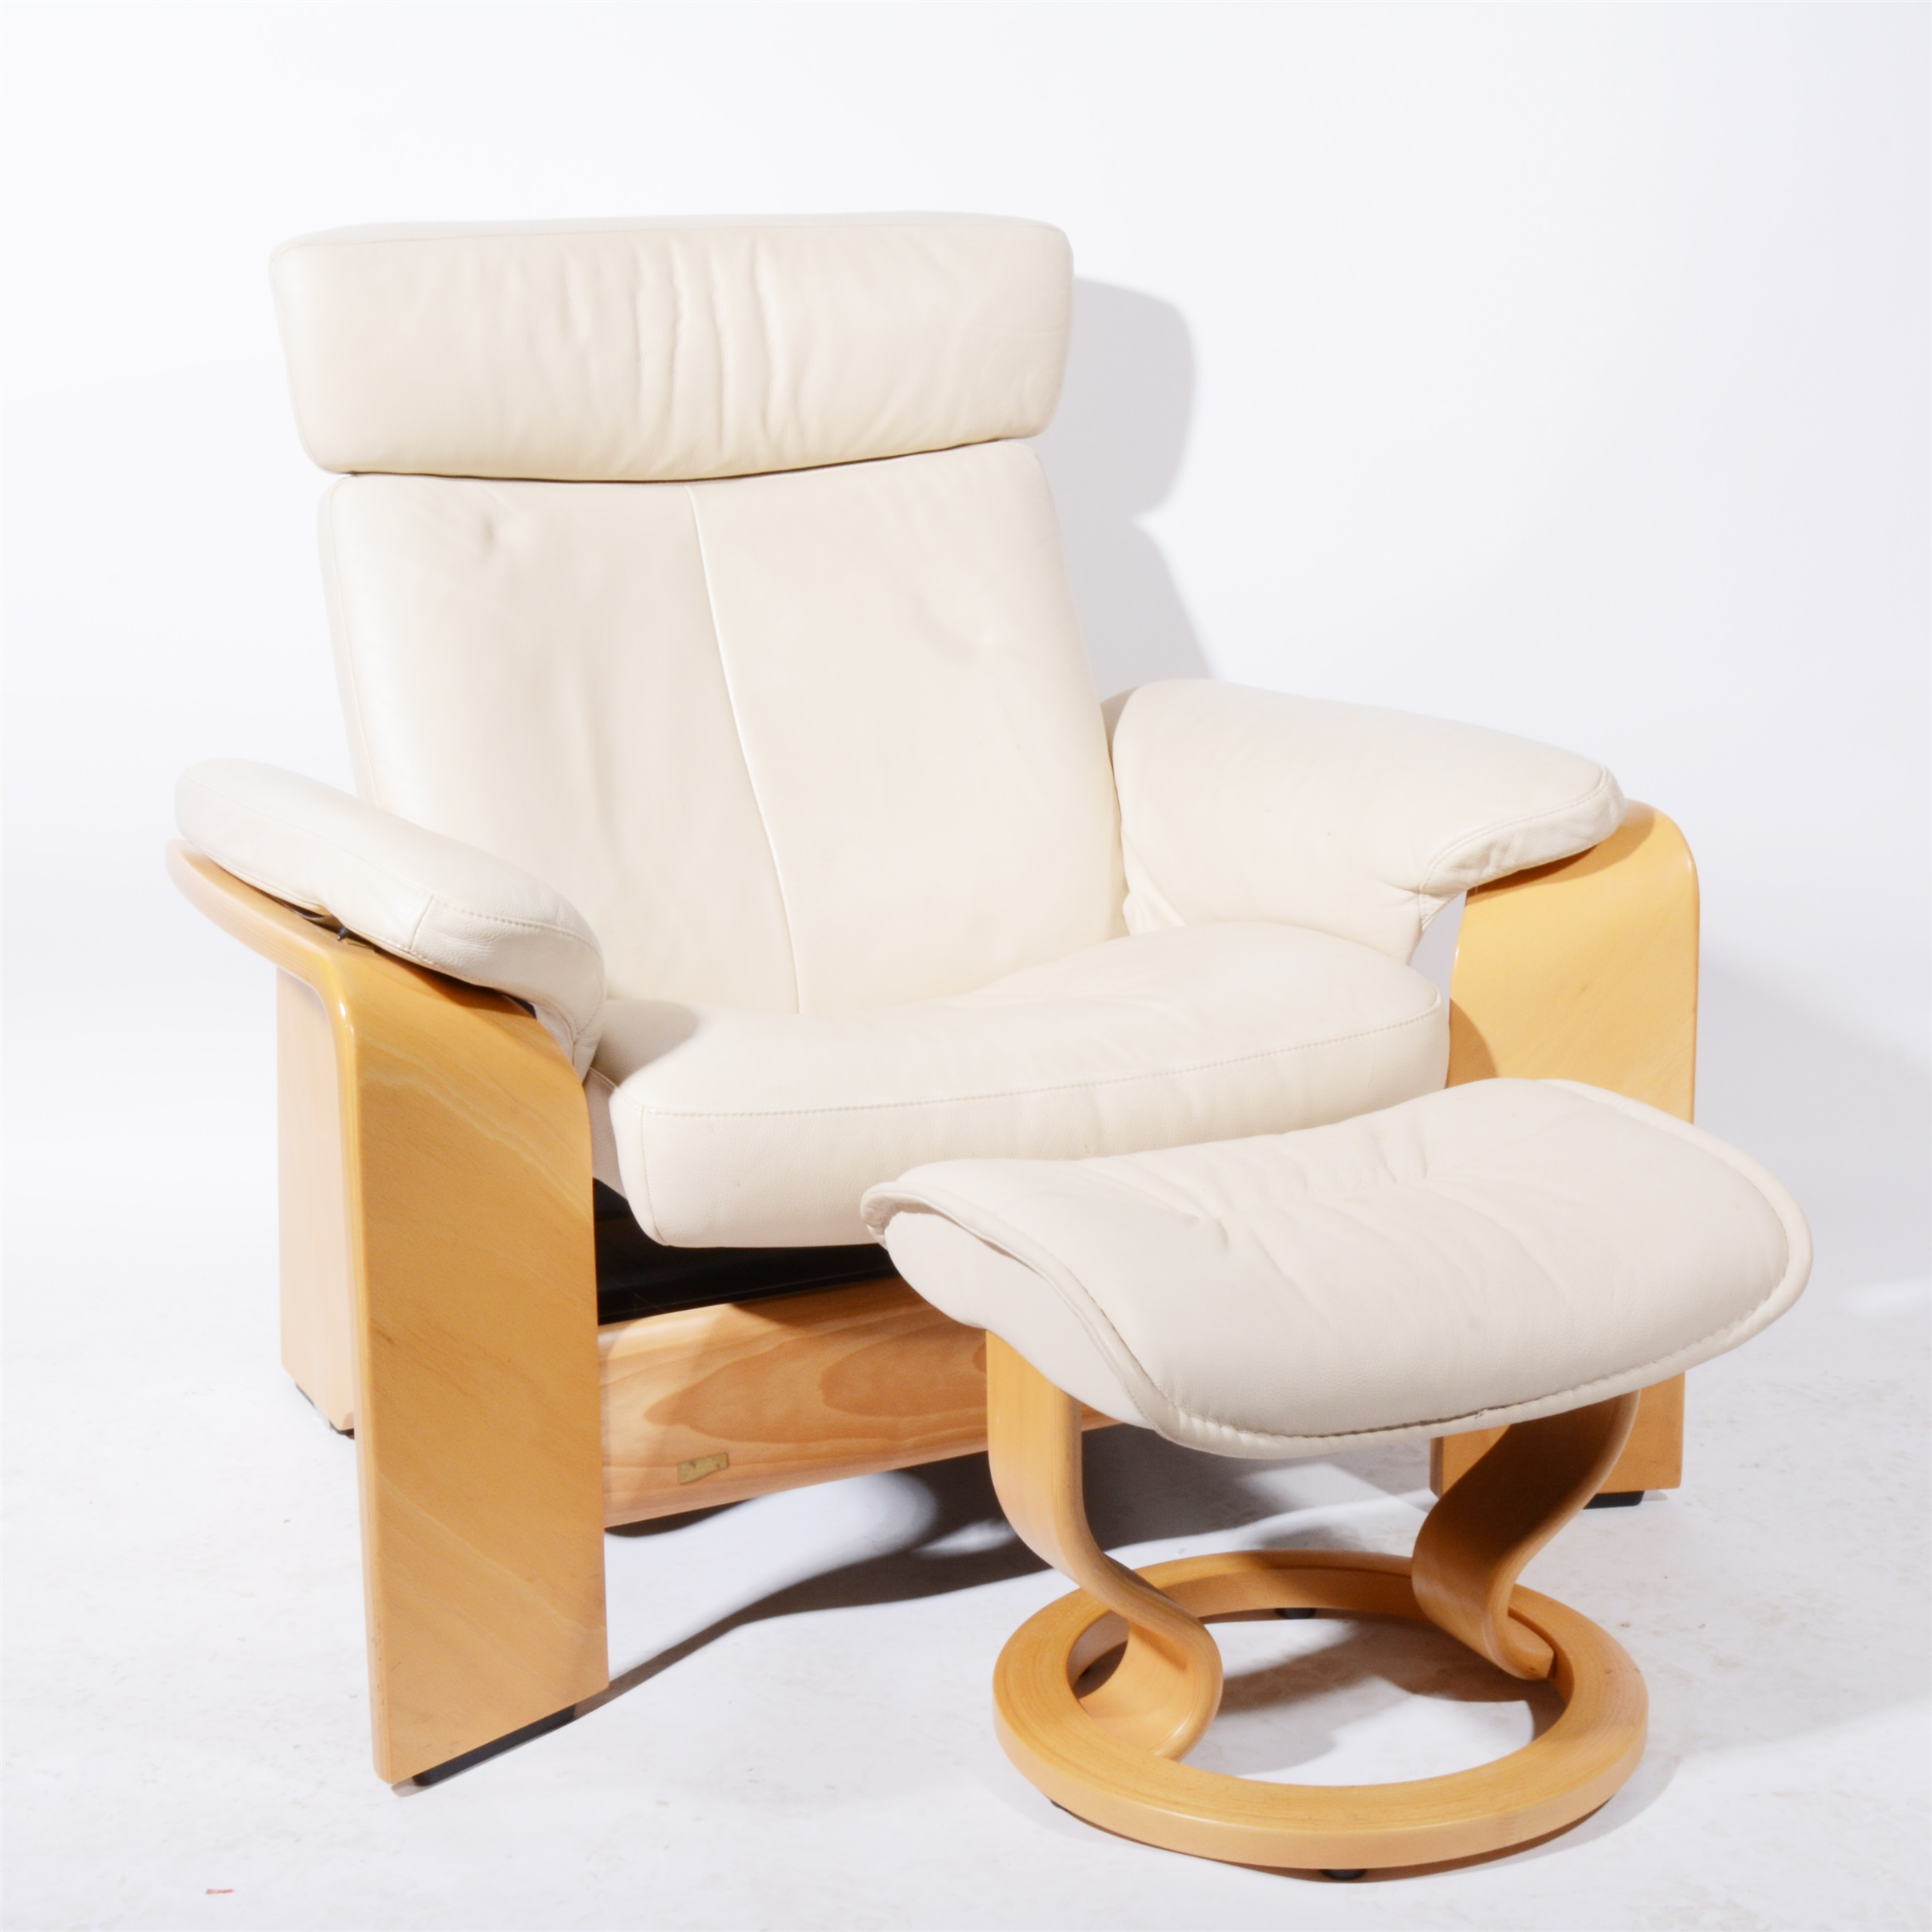 Stressless Furniture Market Harborough Lot 689 A Stressless Pegasus White Leather